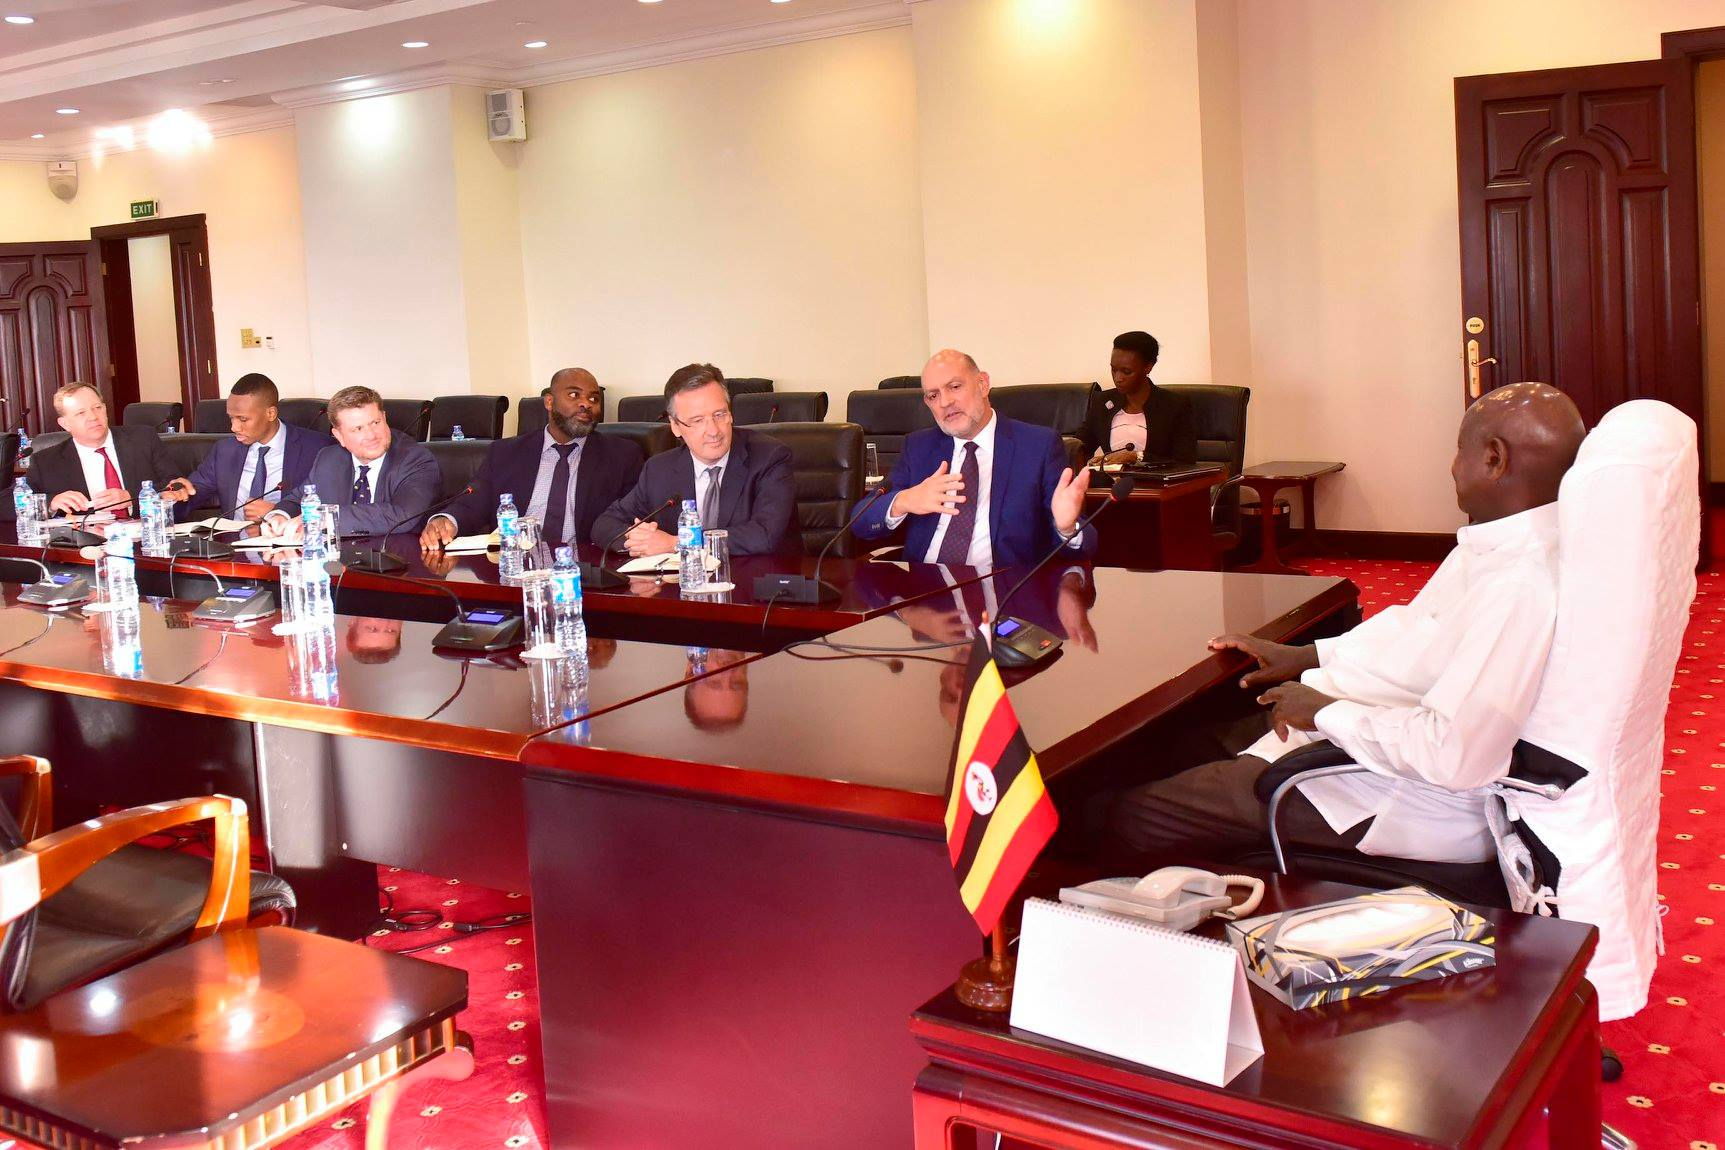 President Museveni in a meeting with UK investors at State House Entebbe. (PPU PHOTO)